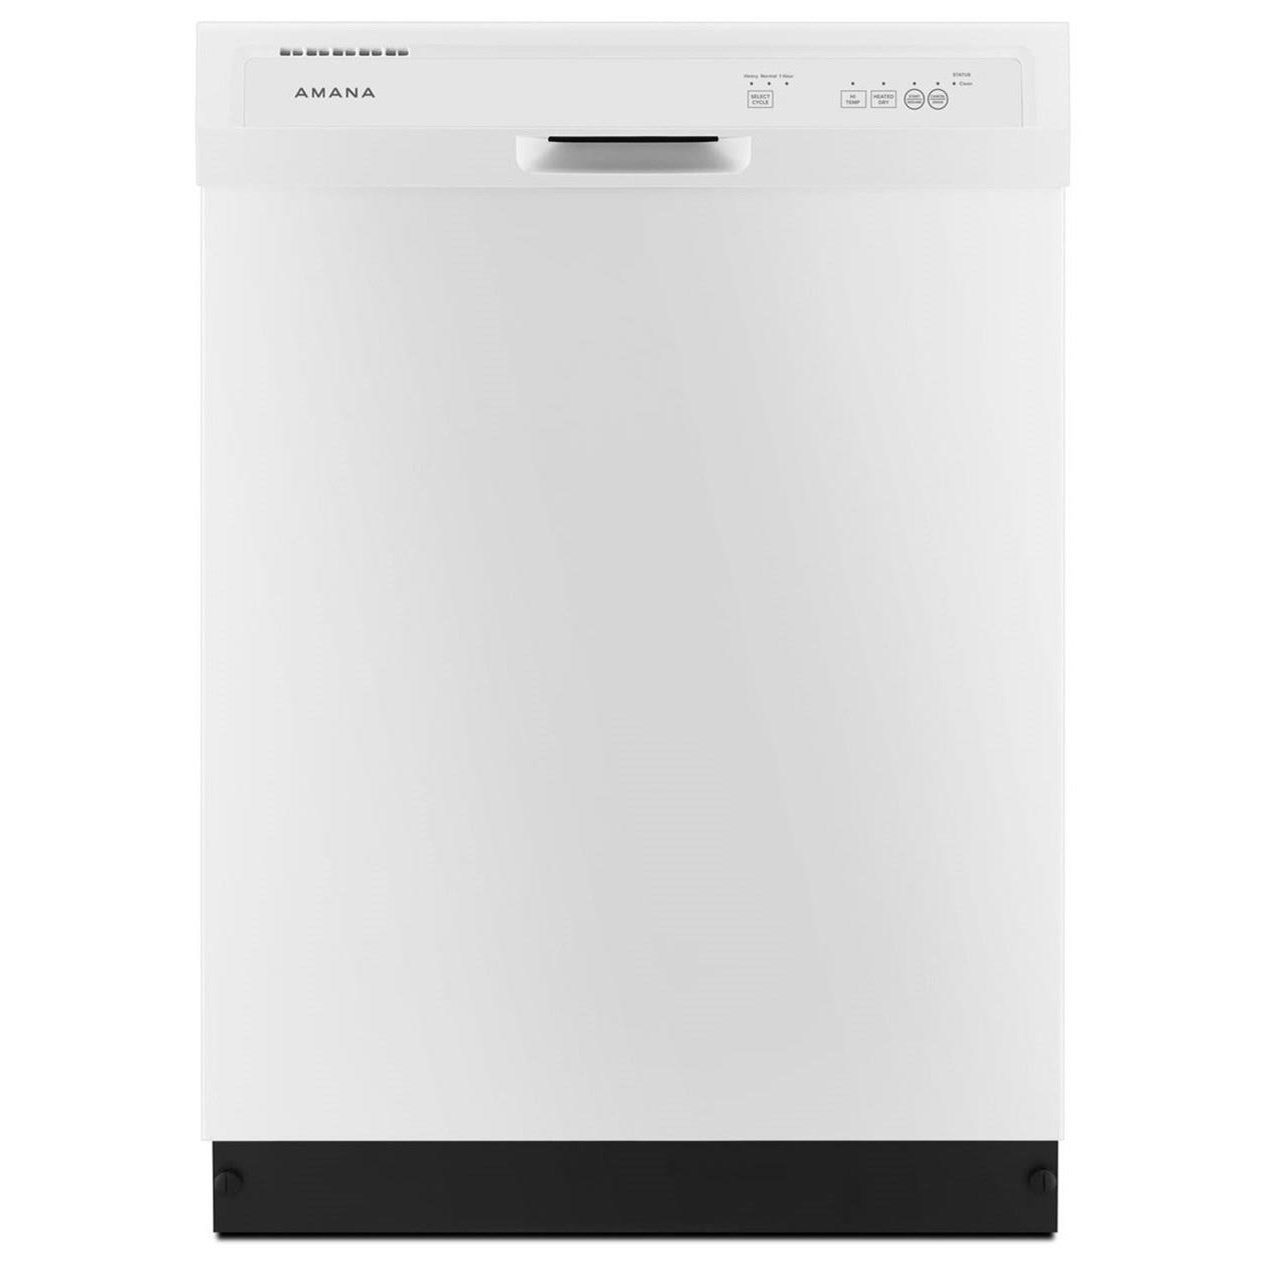 Amana® Dishwasher with Triple Filter Wash Sy